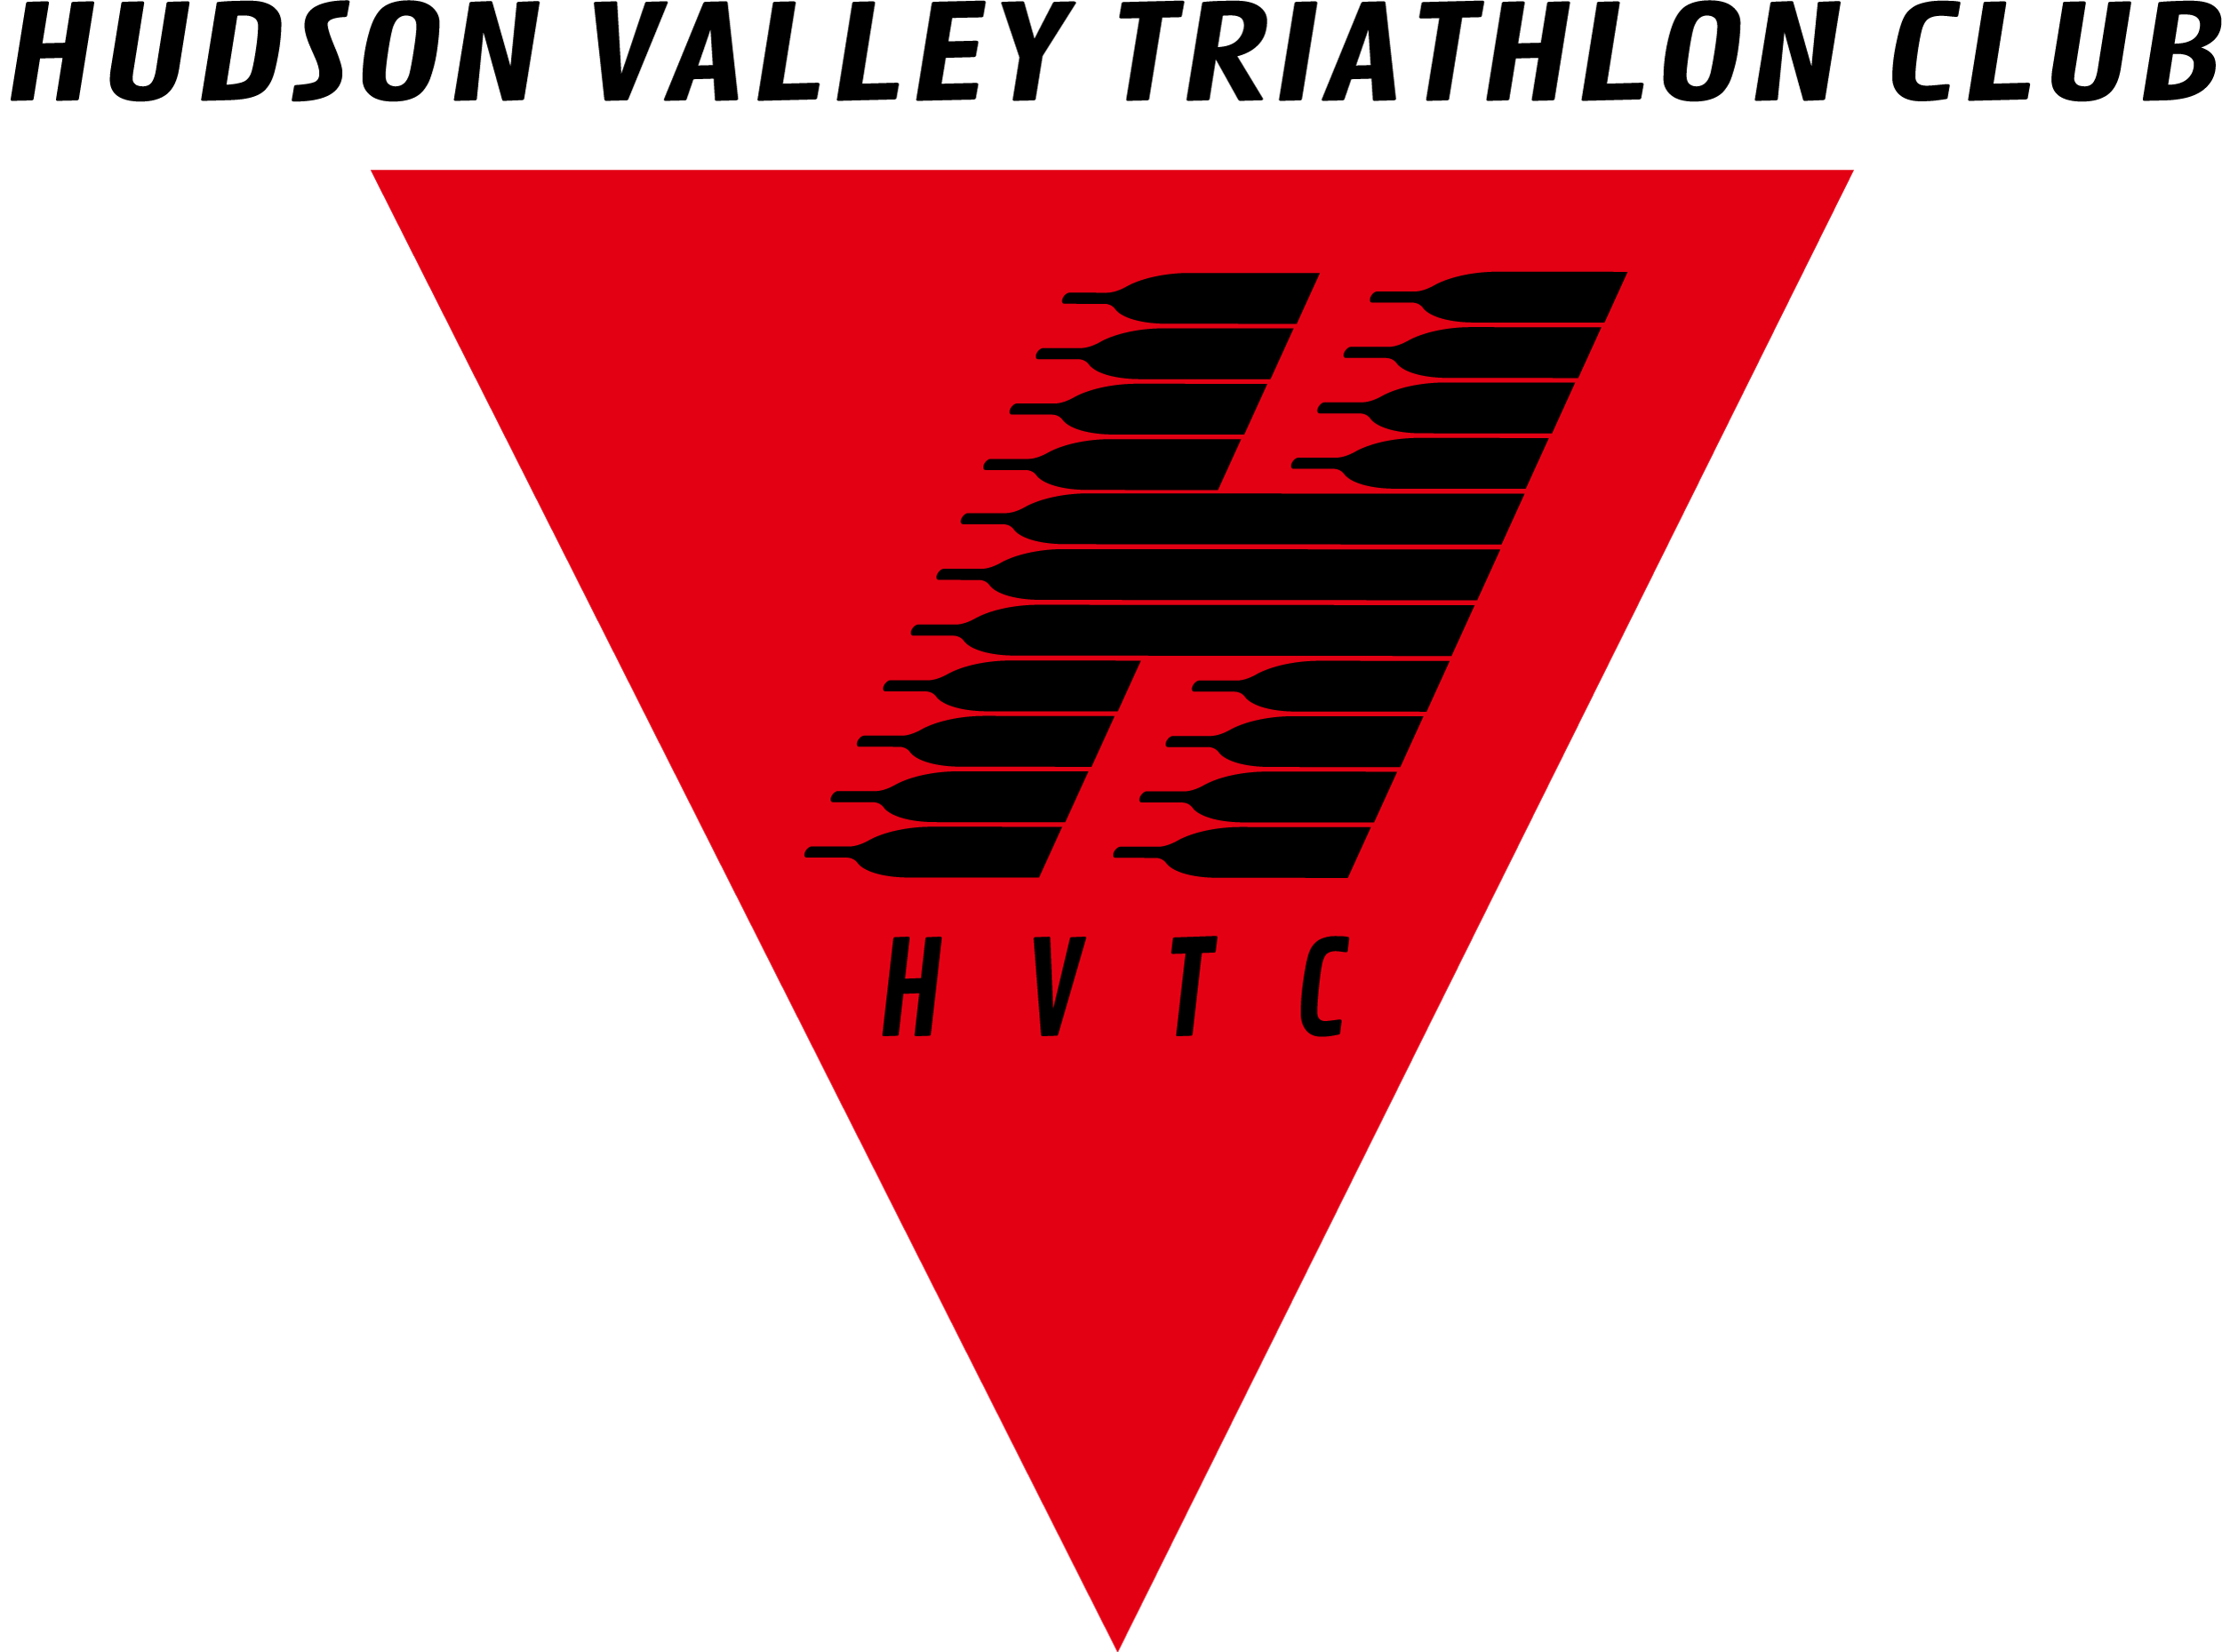 2019 HVTC Summer Tri Series Races 1-4